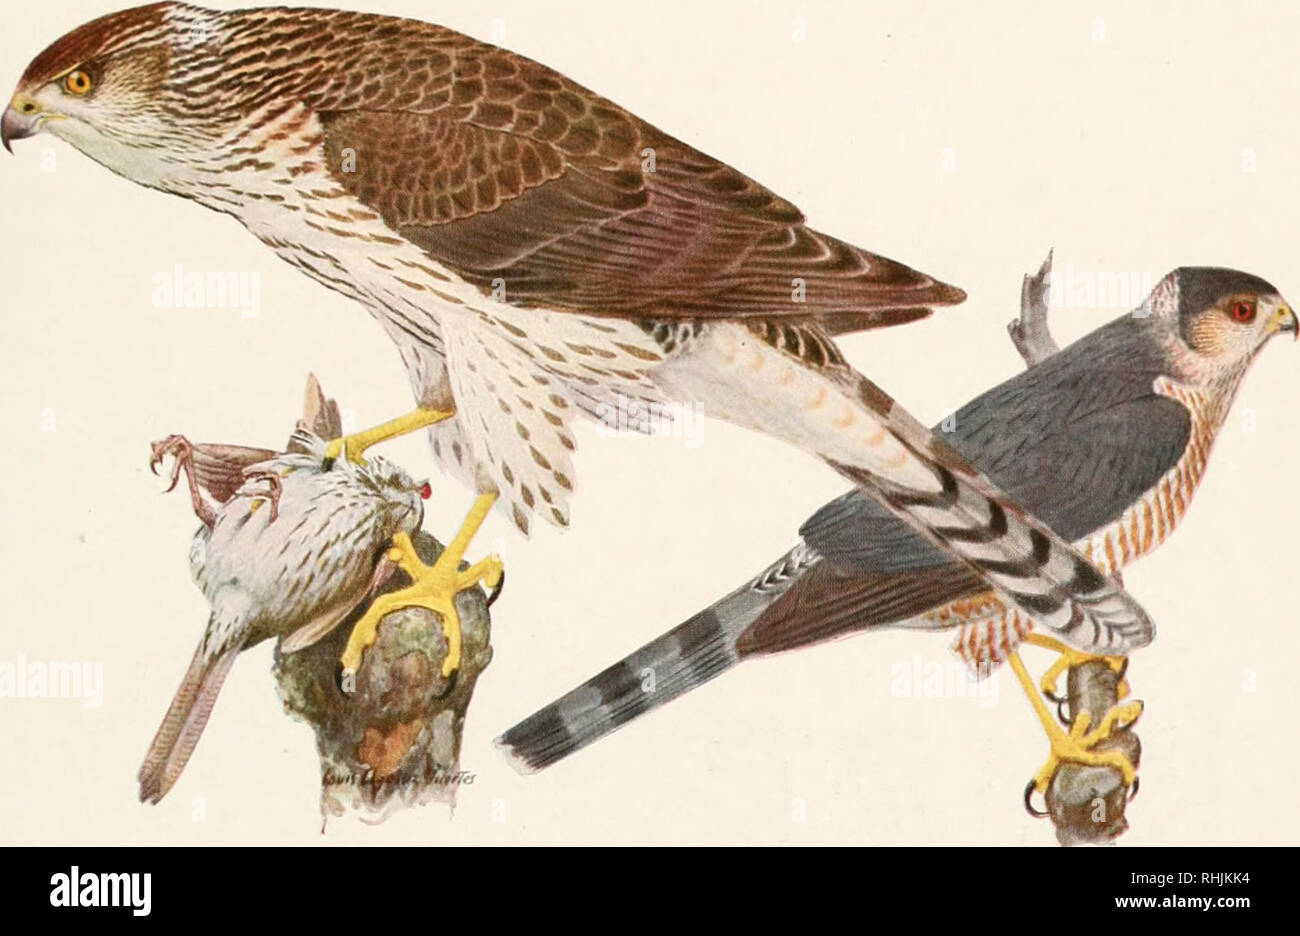 Birds Of America Birds North America Courtesy Of The New York State Mus Um Plate 44 Cooper S Hawk Accipiter Cooperi Bonaparte Immature Female All I Nnt Size Sharp Shinned Hawk Accipiter Rc Ox